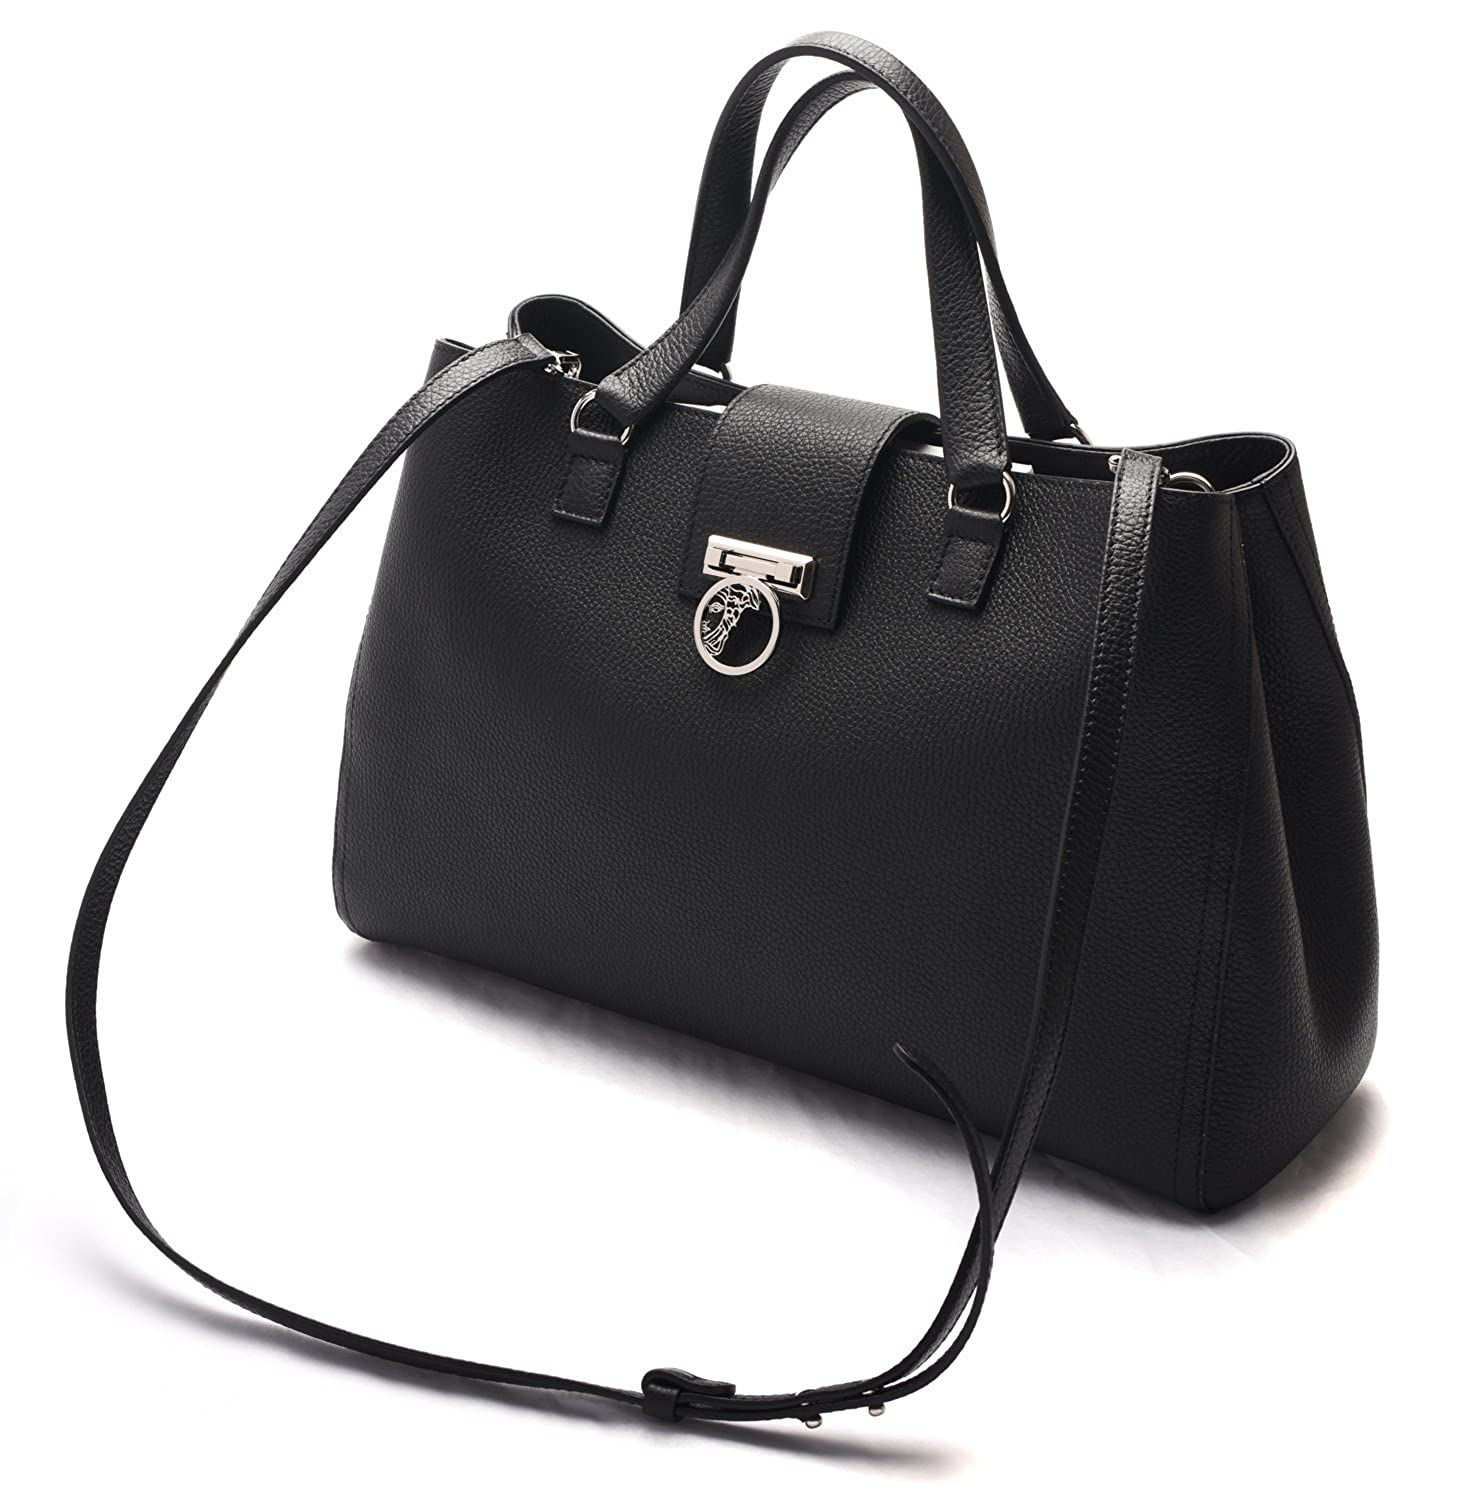 Versace Collection Women Pebbled Leather Medusa Top Handle Handbag Satchel  Black  Amazon.in  Shoes   Handbags 704712a7a9a43